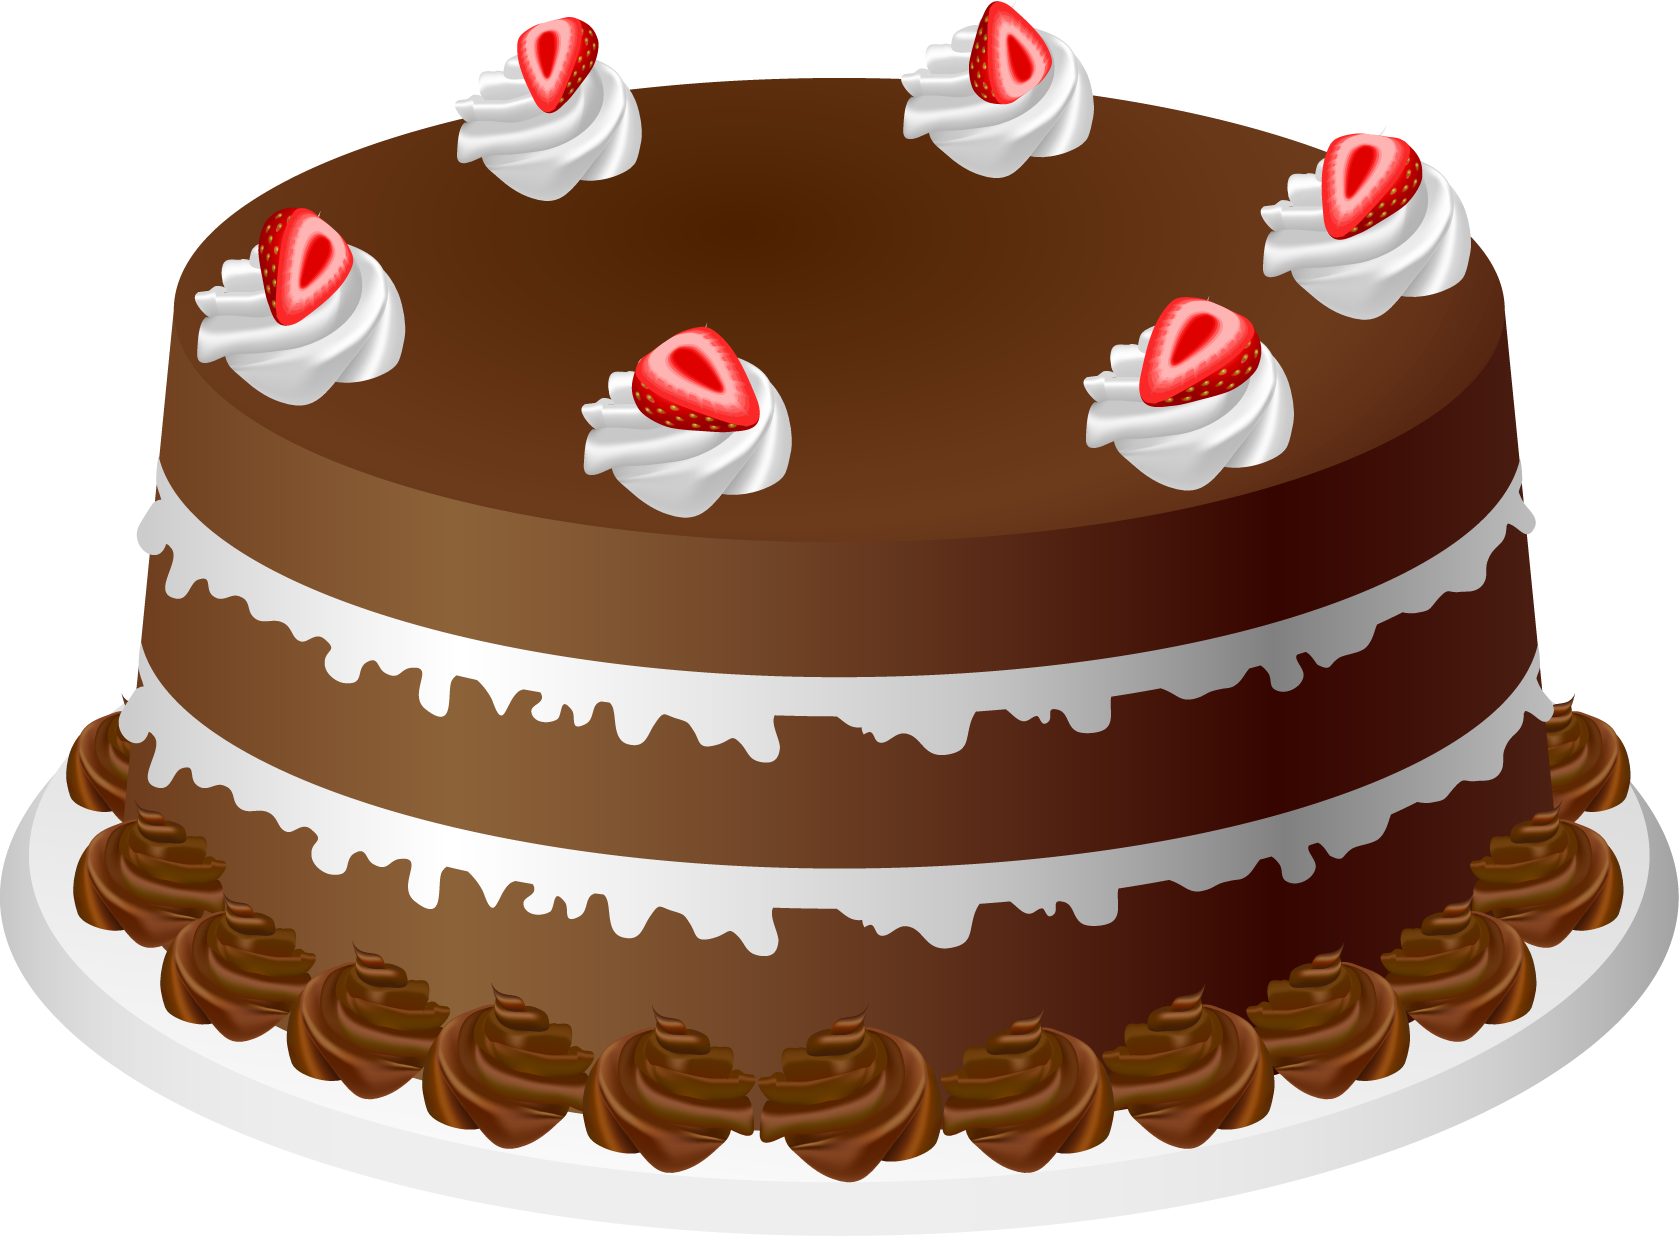 Taste clipart cake. Pin by lucy on